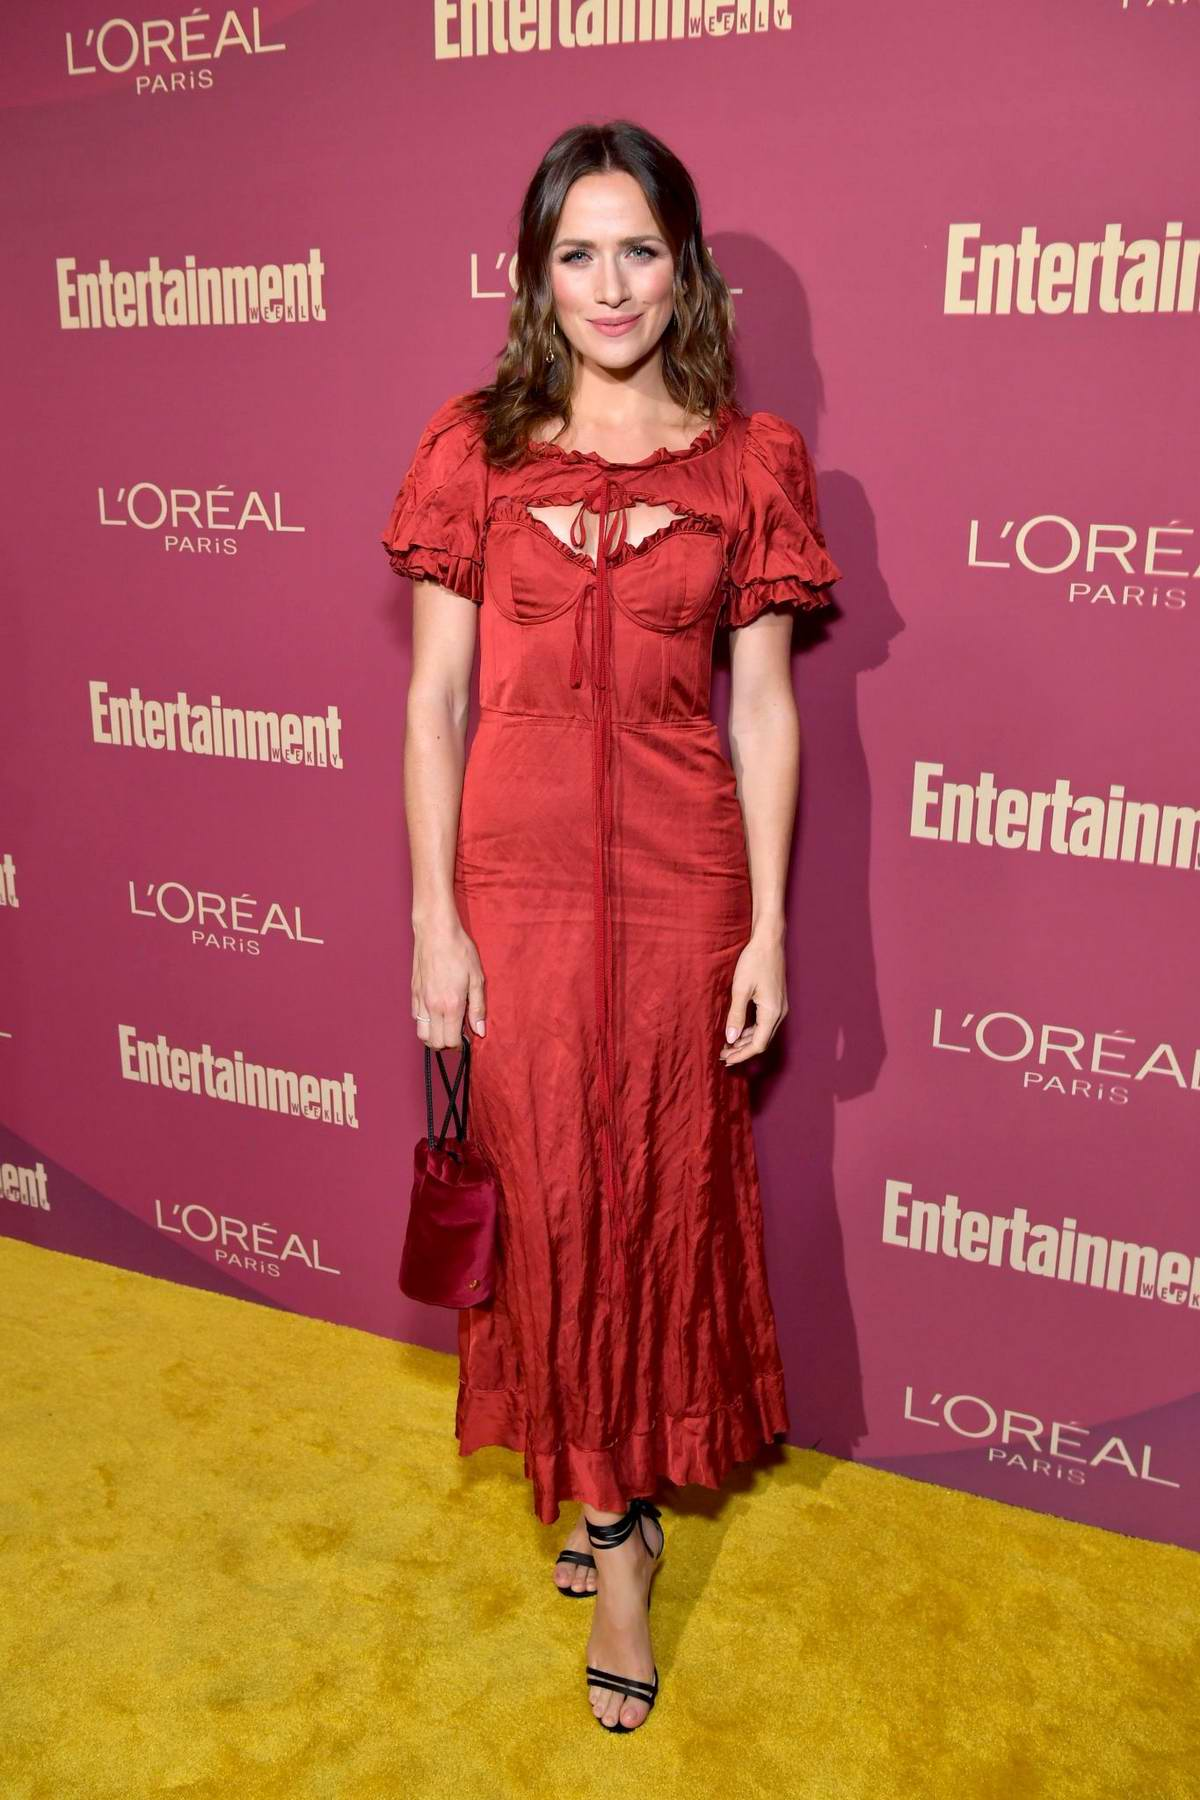 Shantel VanSanten attends 2019 Pre-Emmy Party hosted by Entertainment Weekly and L'Oreal Paris in Los Angeles